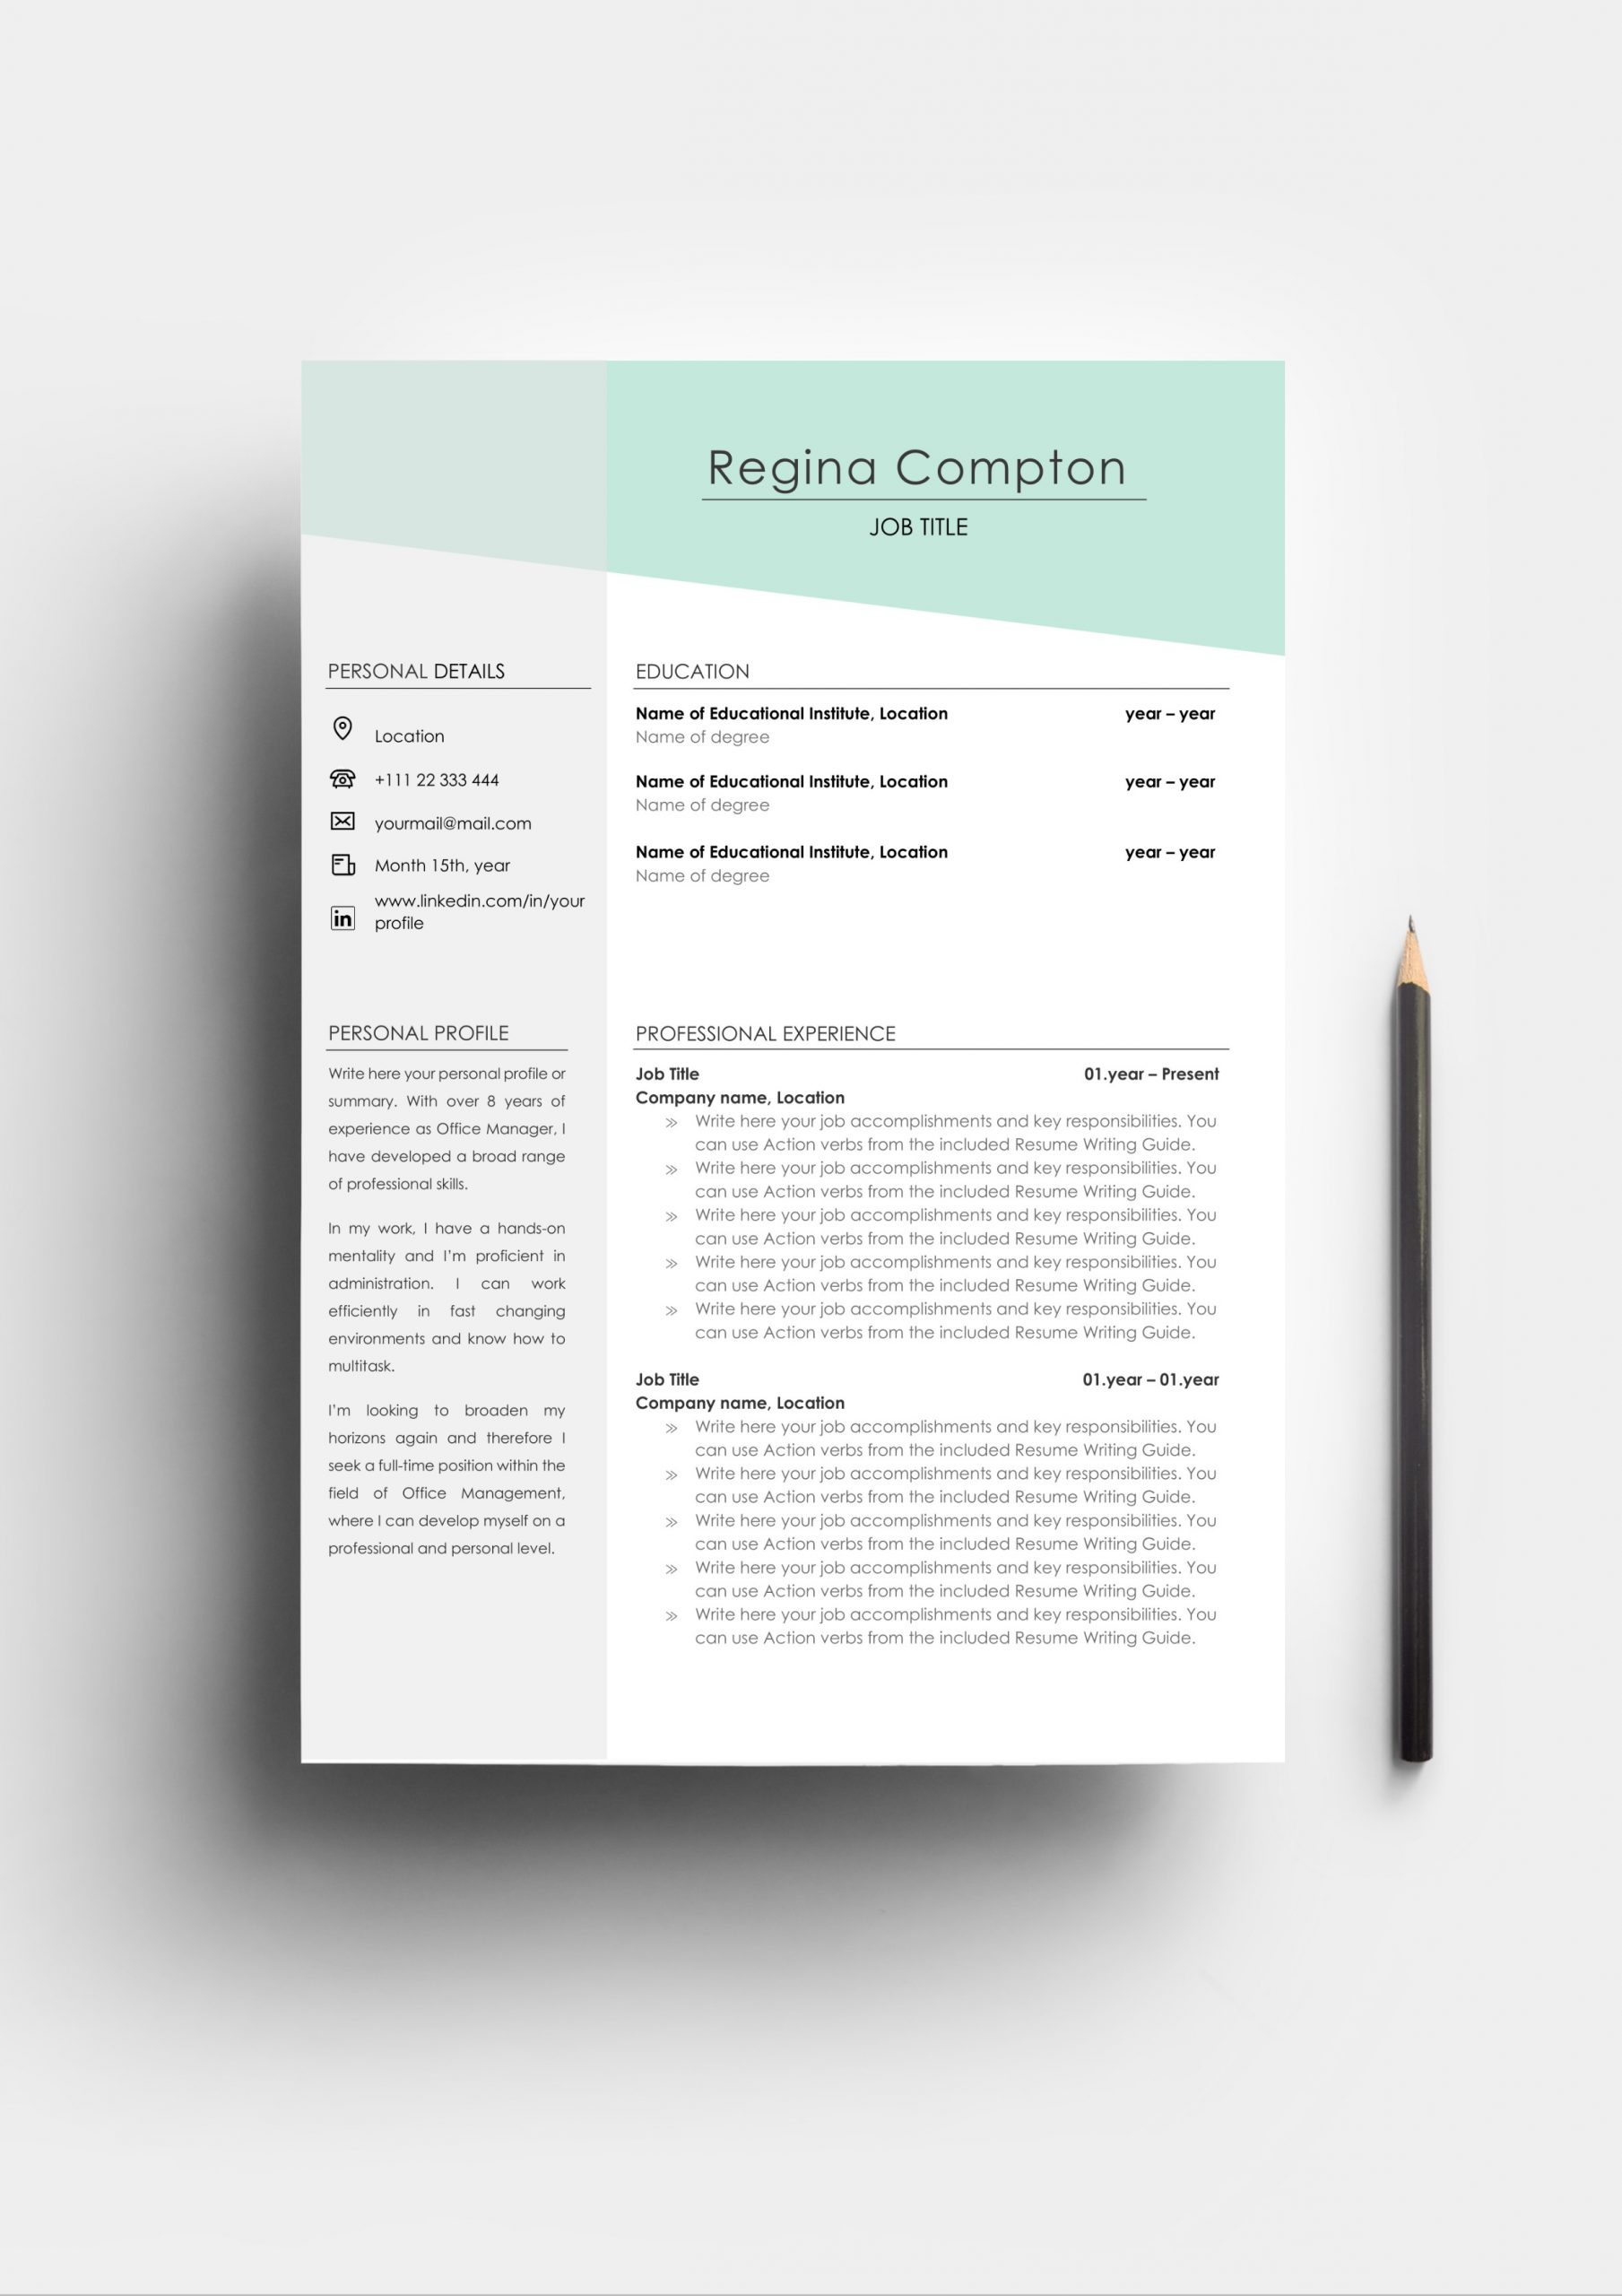 eye catching resume template and cover letter cv regina compton grey scaled chief Resume Eye Catching Resume 2020